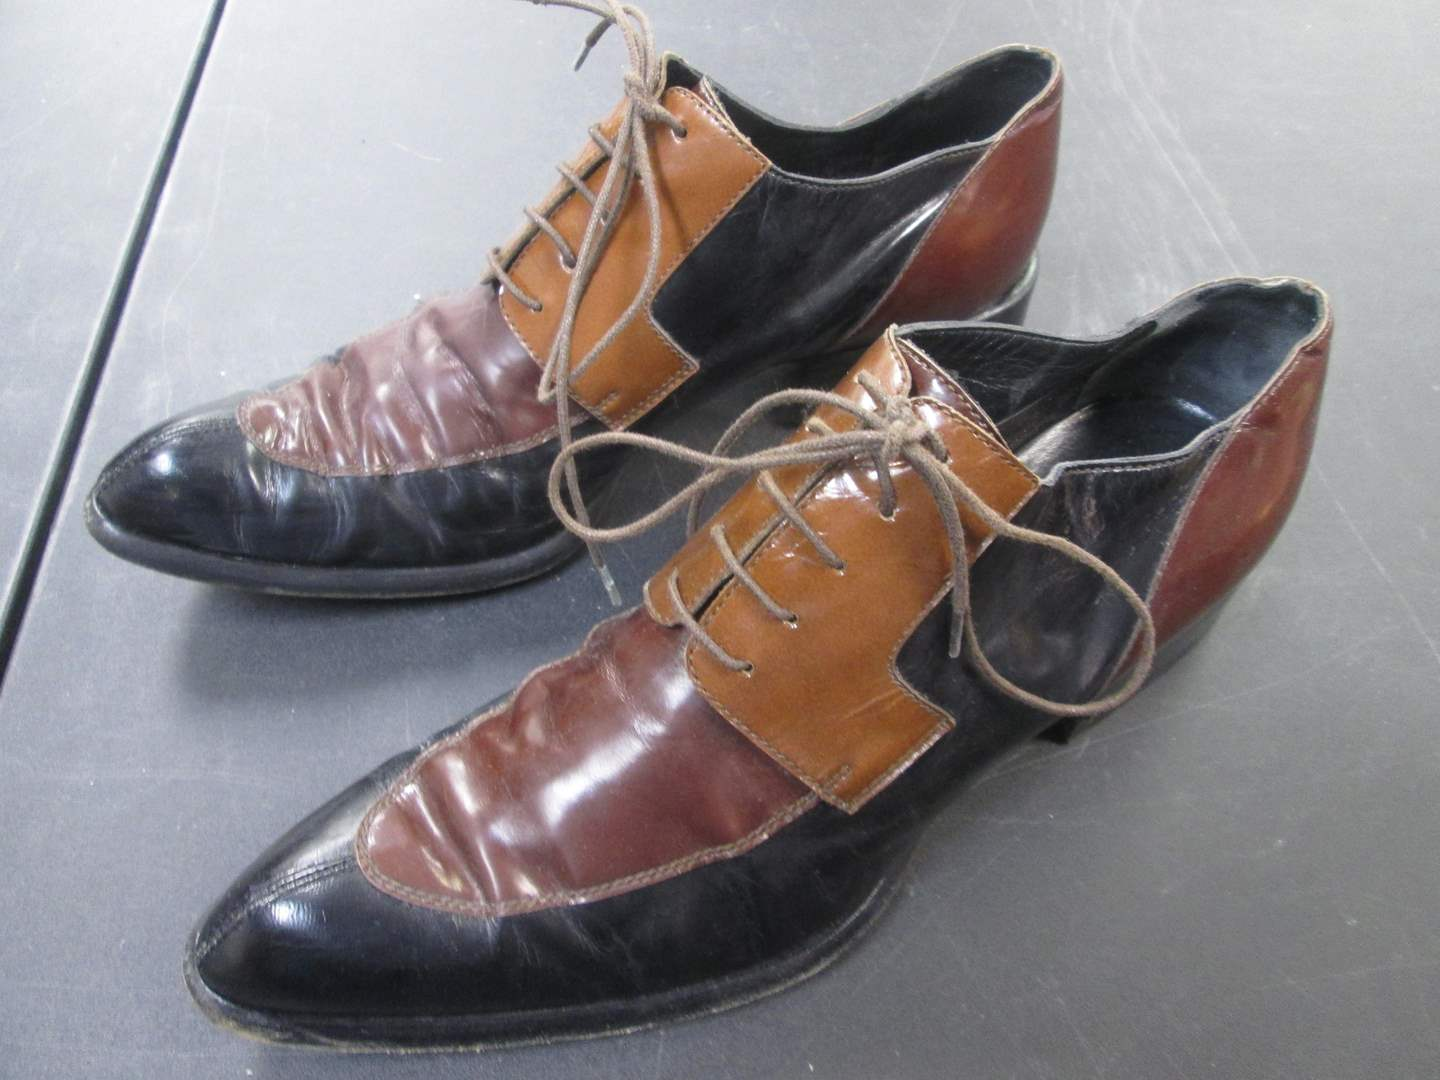 Lot # 58 - Moschino Shoes, Made Italy, Size 38 (main image)